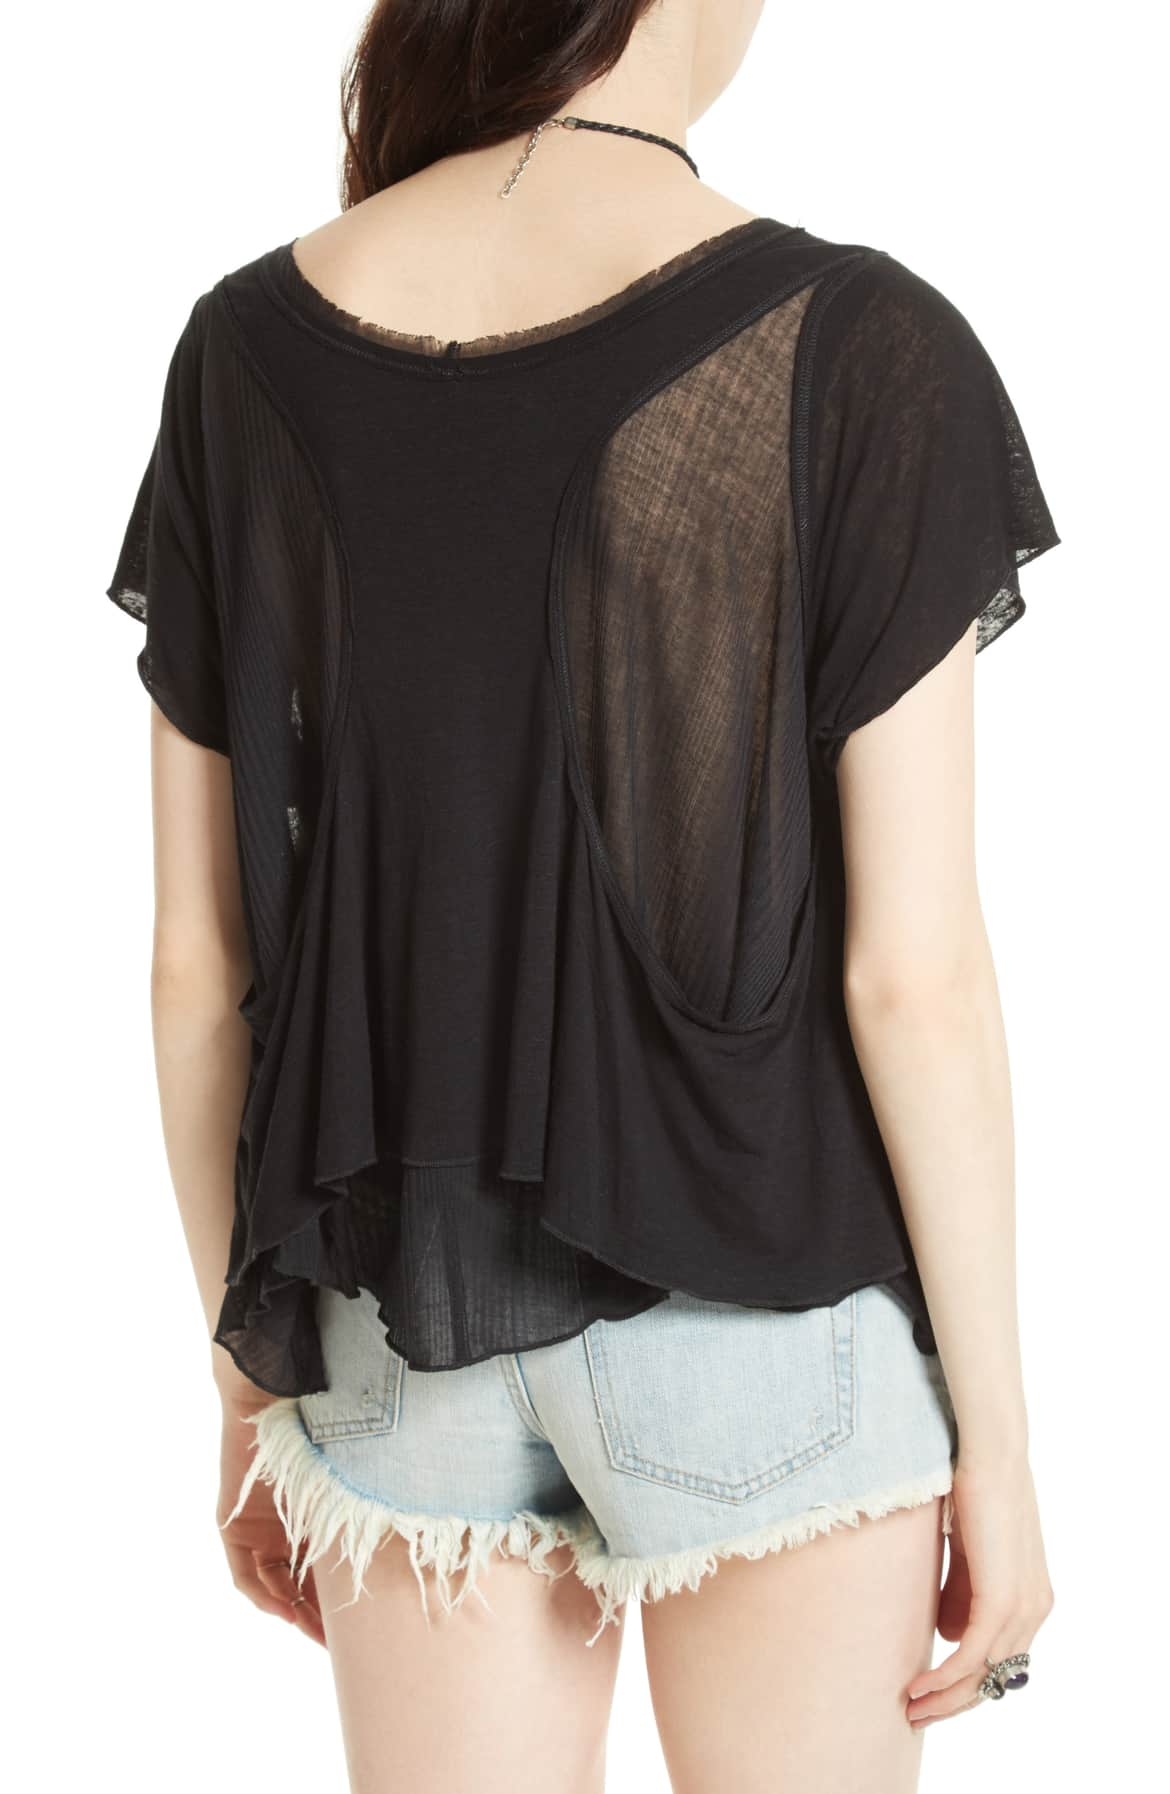 Free People Cookie Layered-Look T-Shirt Black S - Gear Relapse